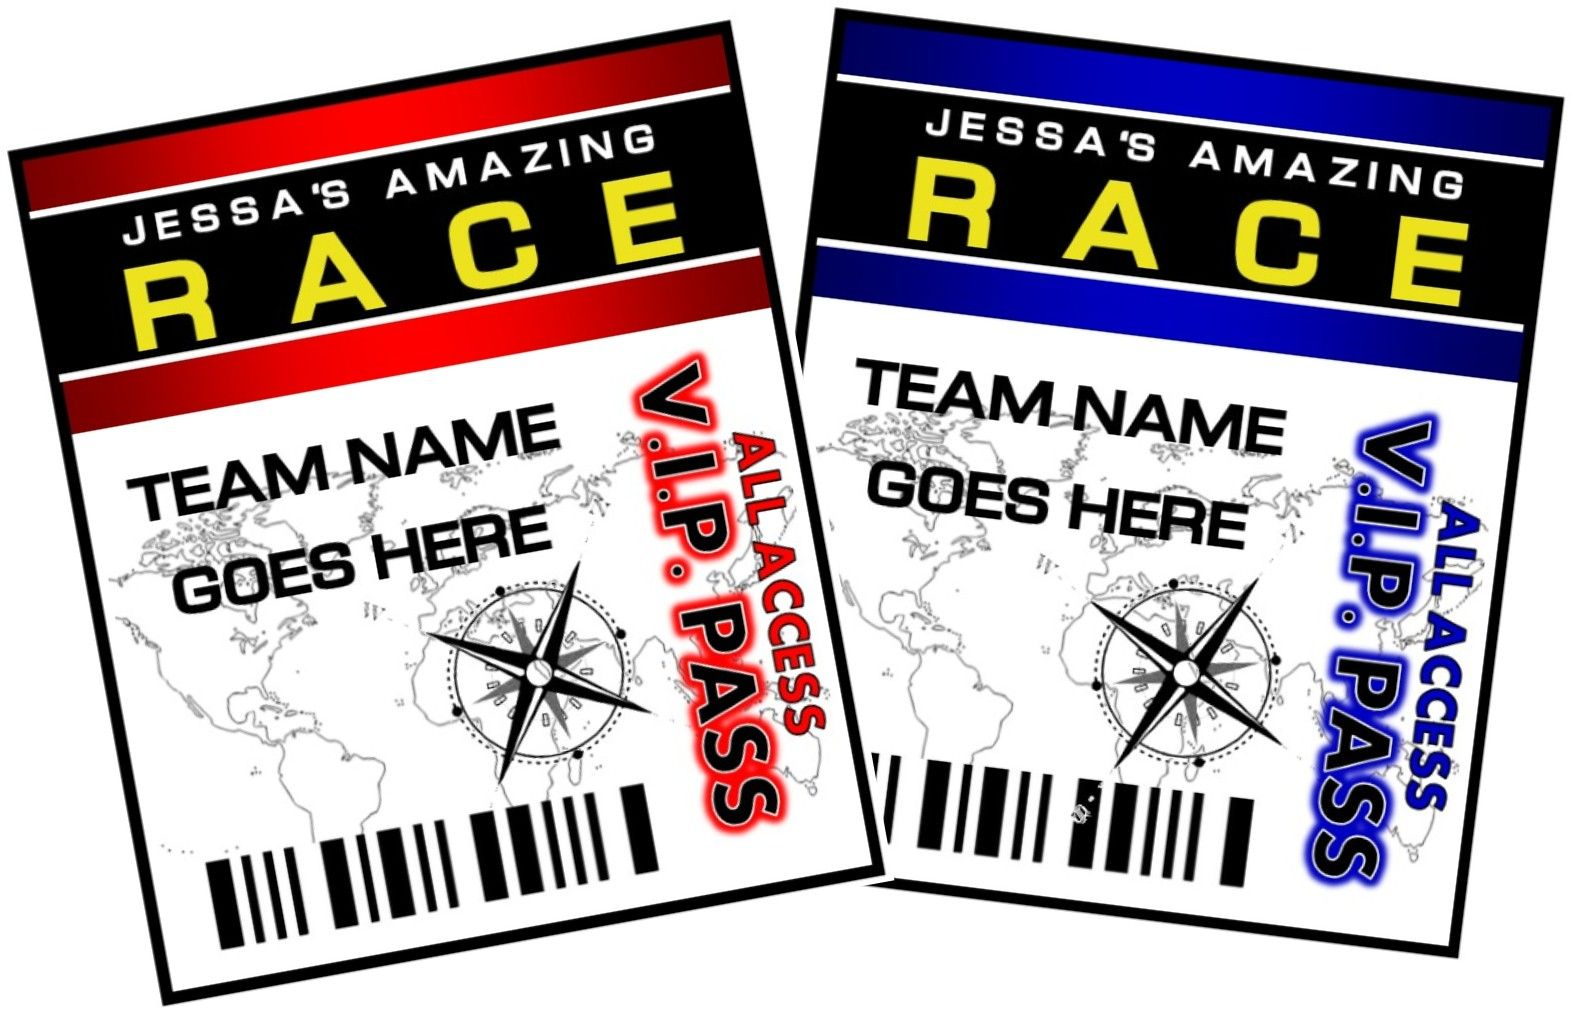 Amazing race ideas - Amazing Race Party Supplies And Invitations